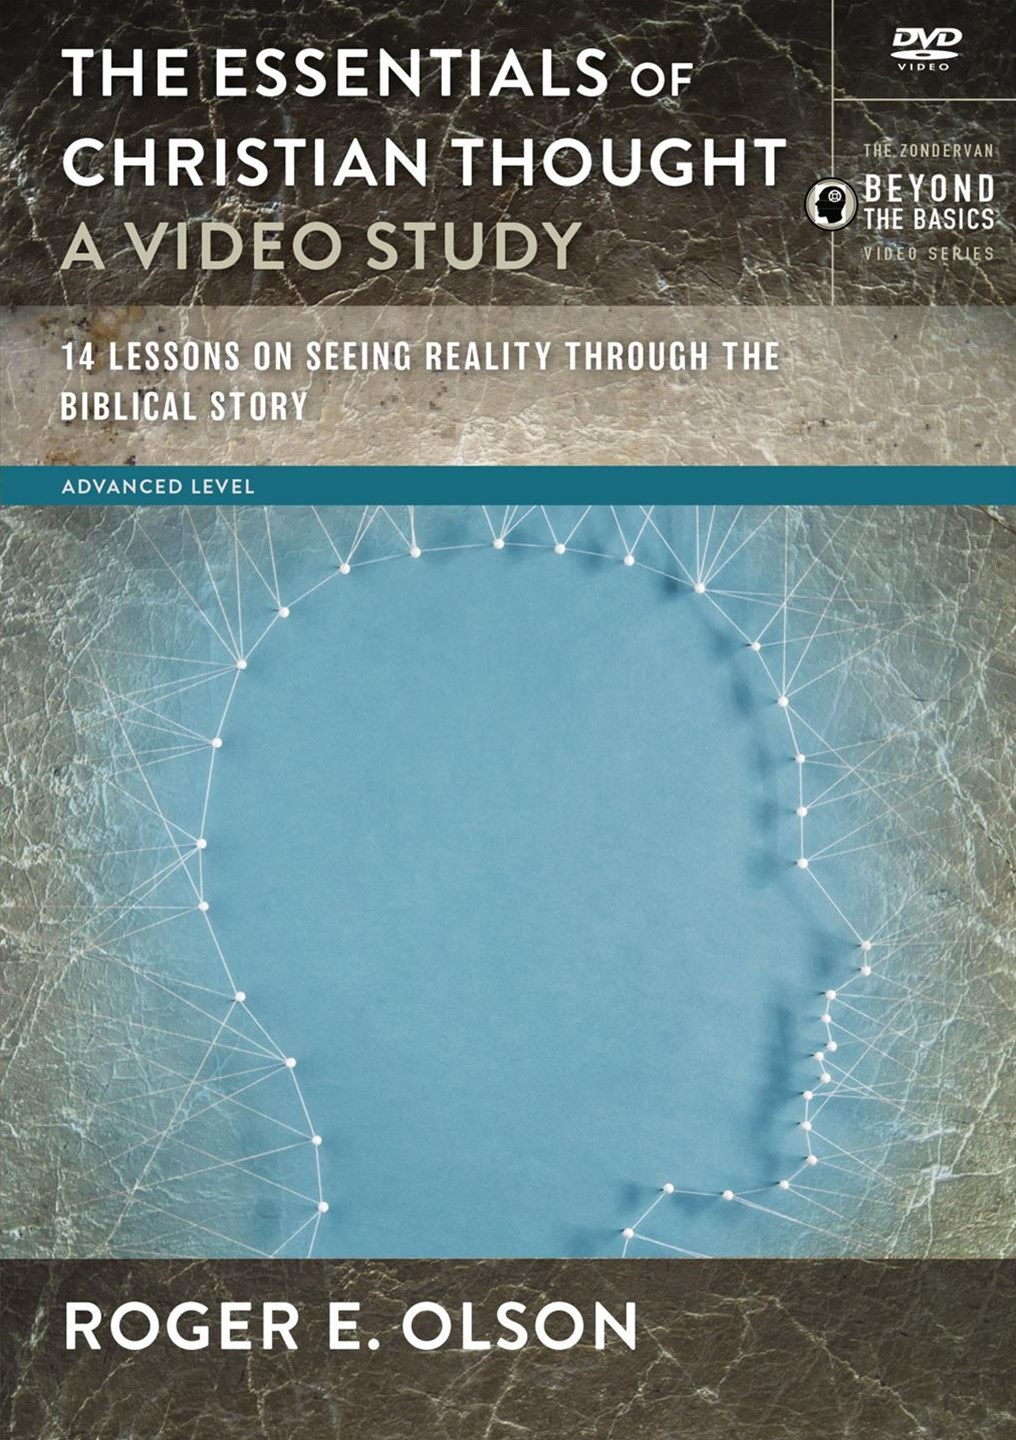 The Essentials Of Christian Thought, A Video Study: 14 Lessons On SeeingReality Through The Biblical Story